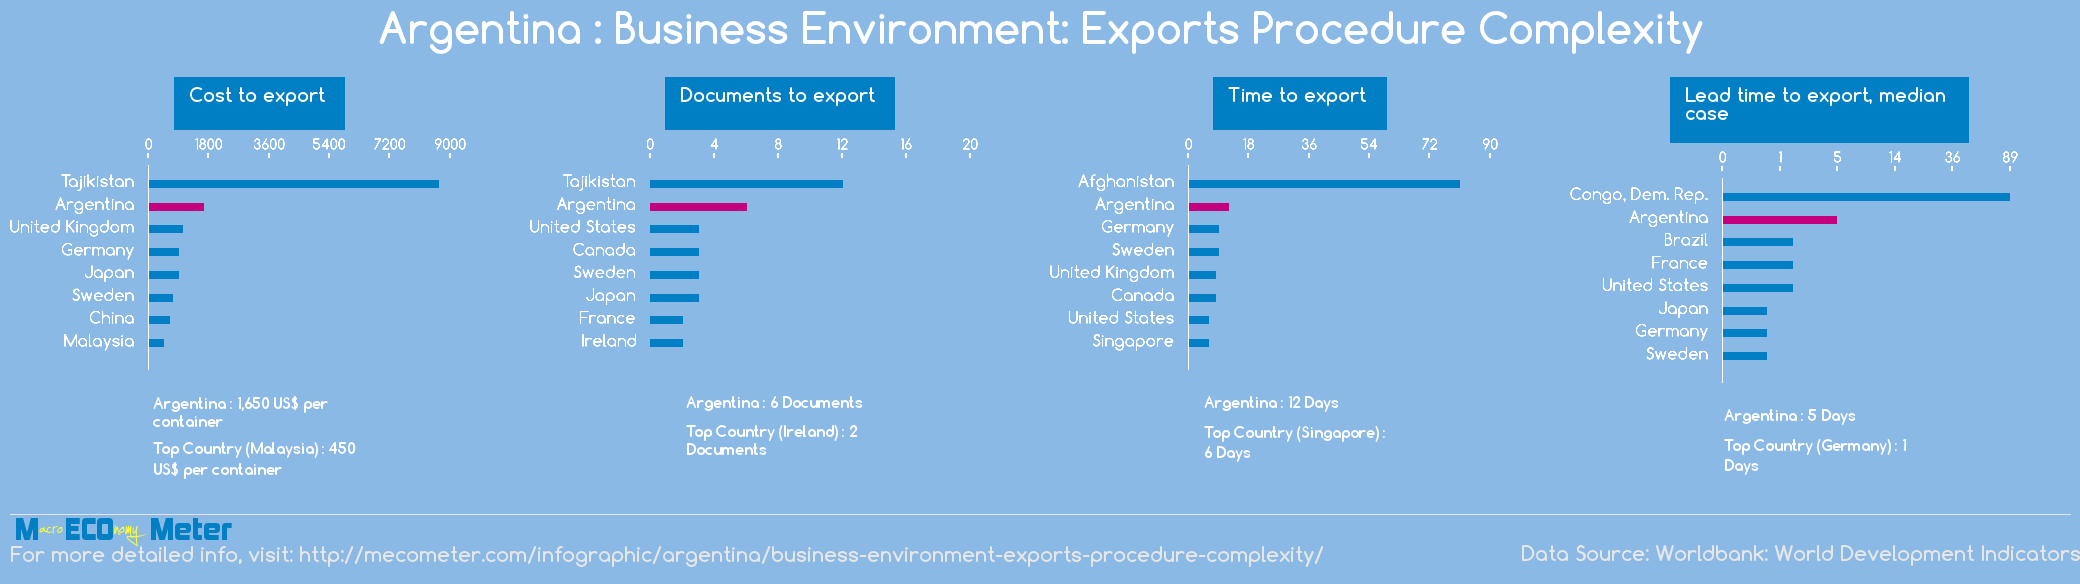 Argentina : Business Environment: Exports Procedure Complexity